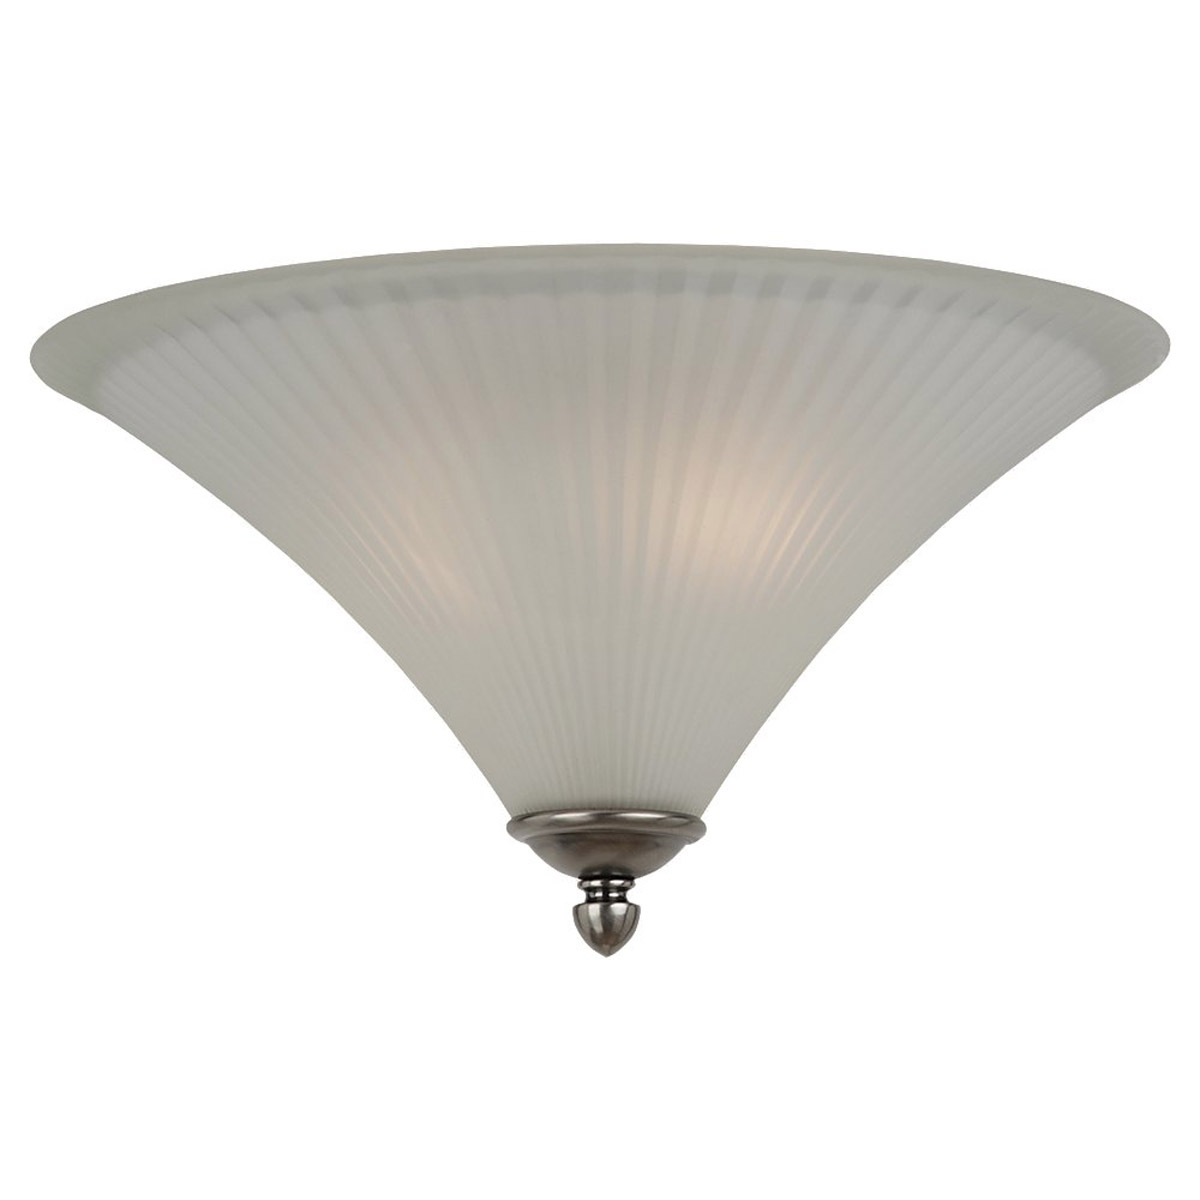 Sea Gull Lighting Joliet 2 Light Flush Mount in Antique Brushed Nickel 75935-965